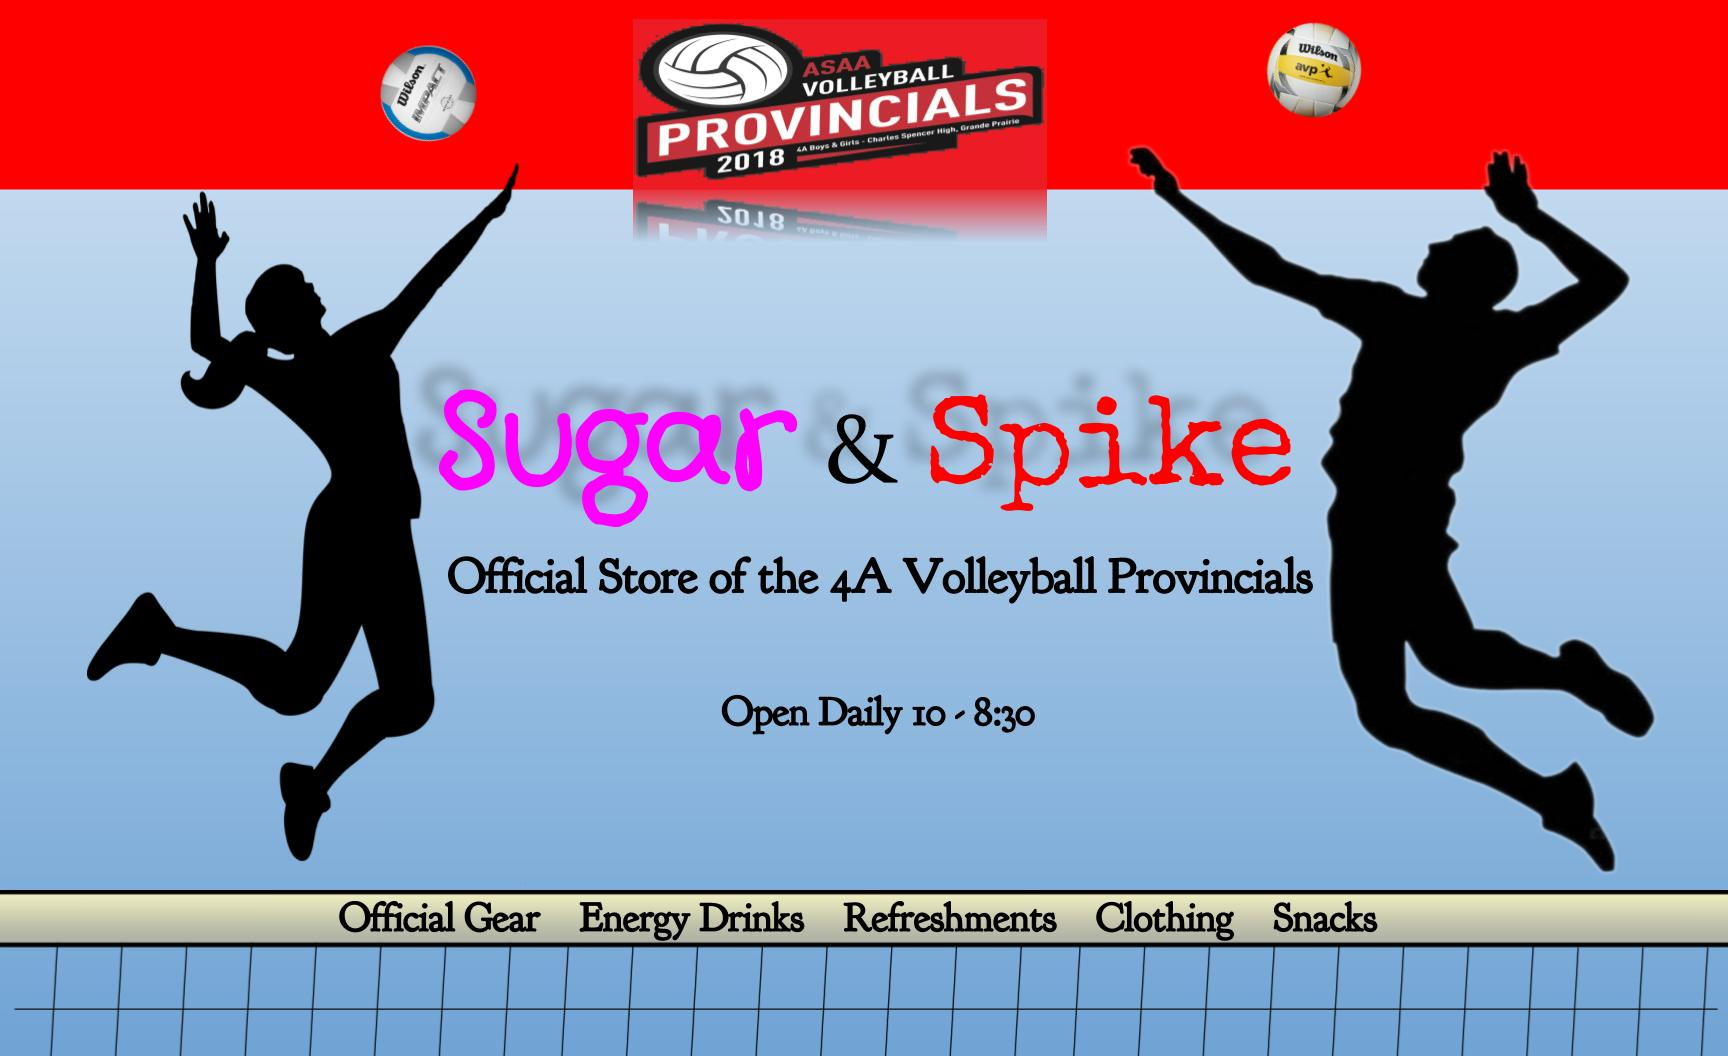 Sugar and Spike - the Official Store of 4A Provincials